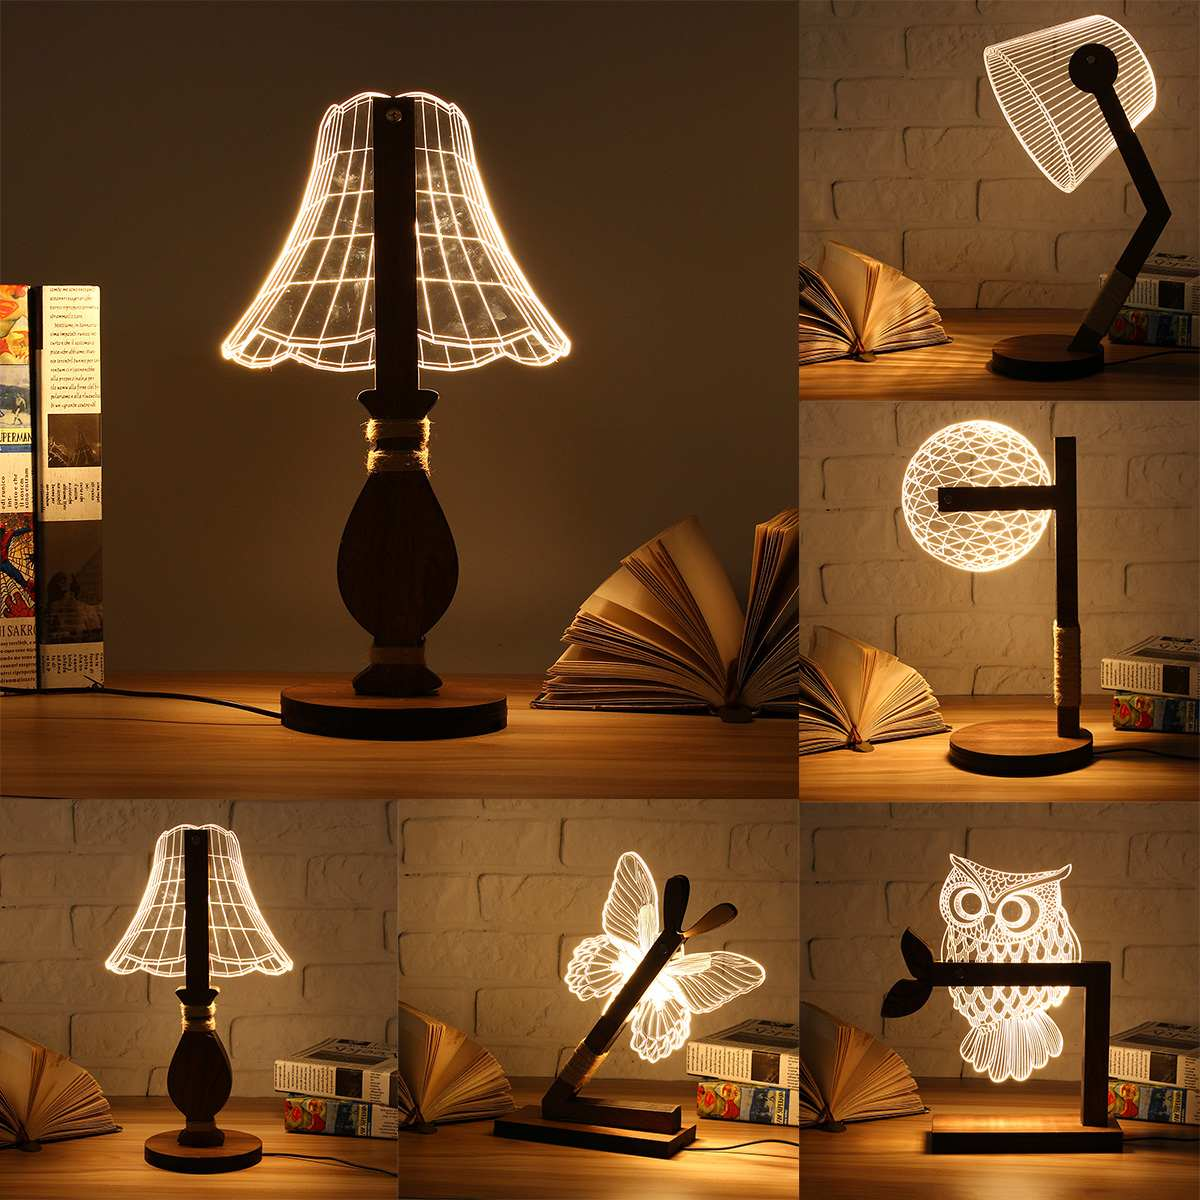 Best Wooden USB 3D LED Animal Butterfly OWL Night Light Warm Lighting Table Reading Lamps Bedroom Home Decor Birthday Gift|Night Lights| |  - title=